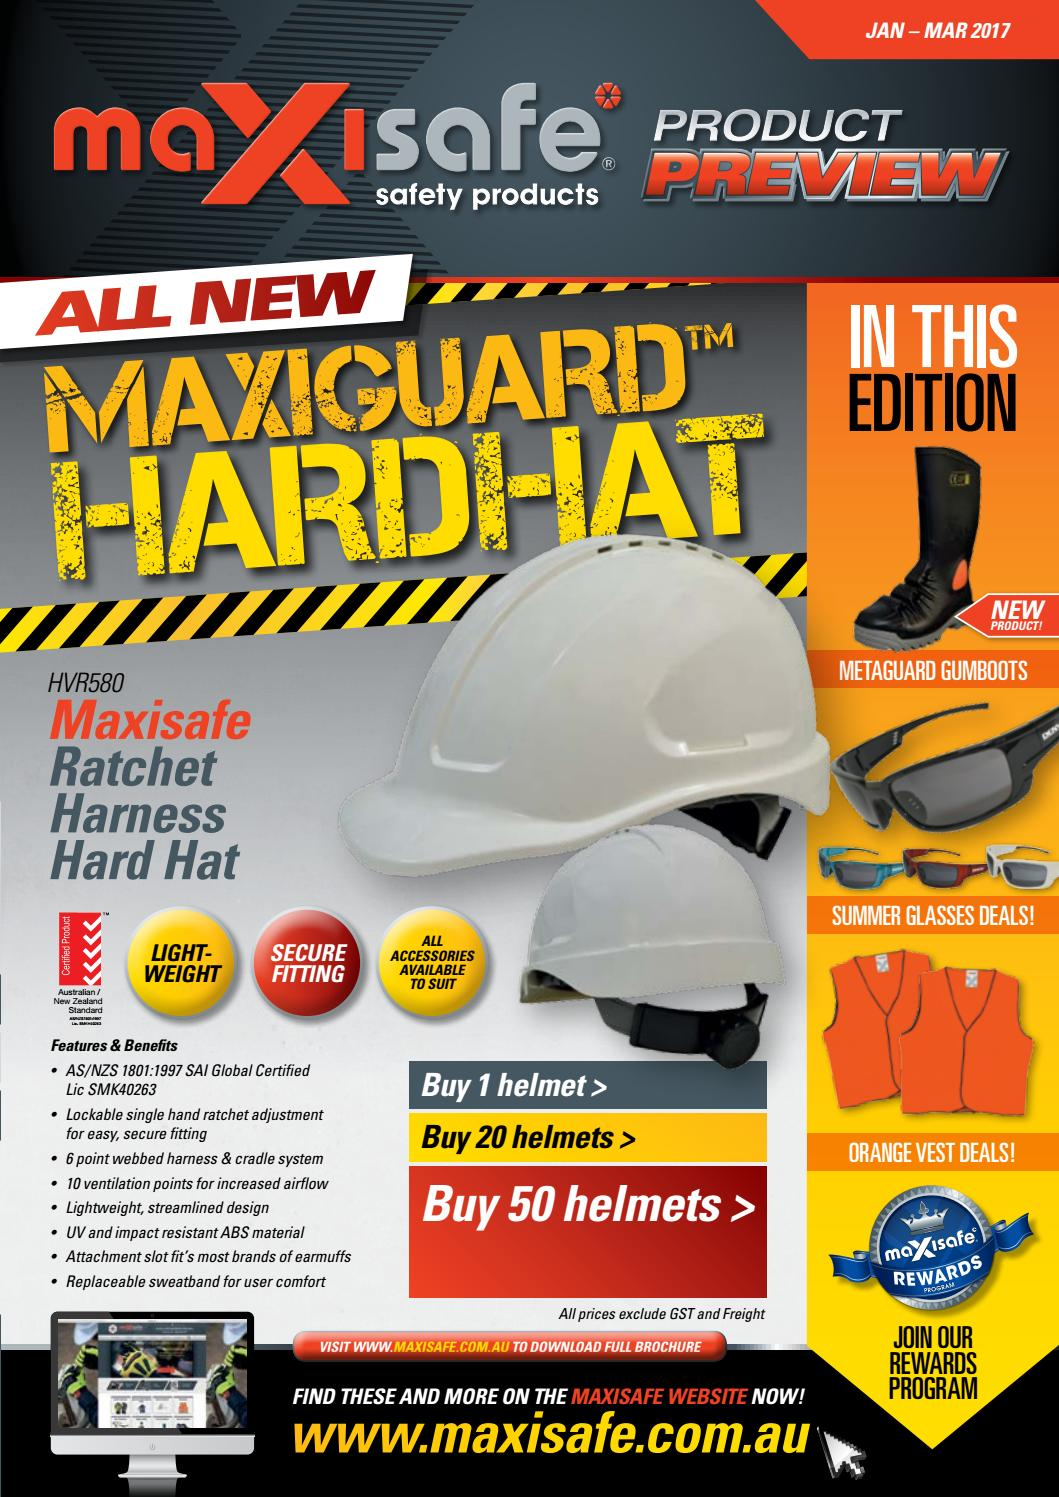 Personal Safety Care Equipment in Australia by maxisafe - issuu